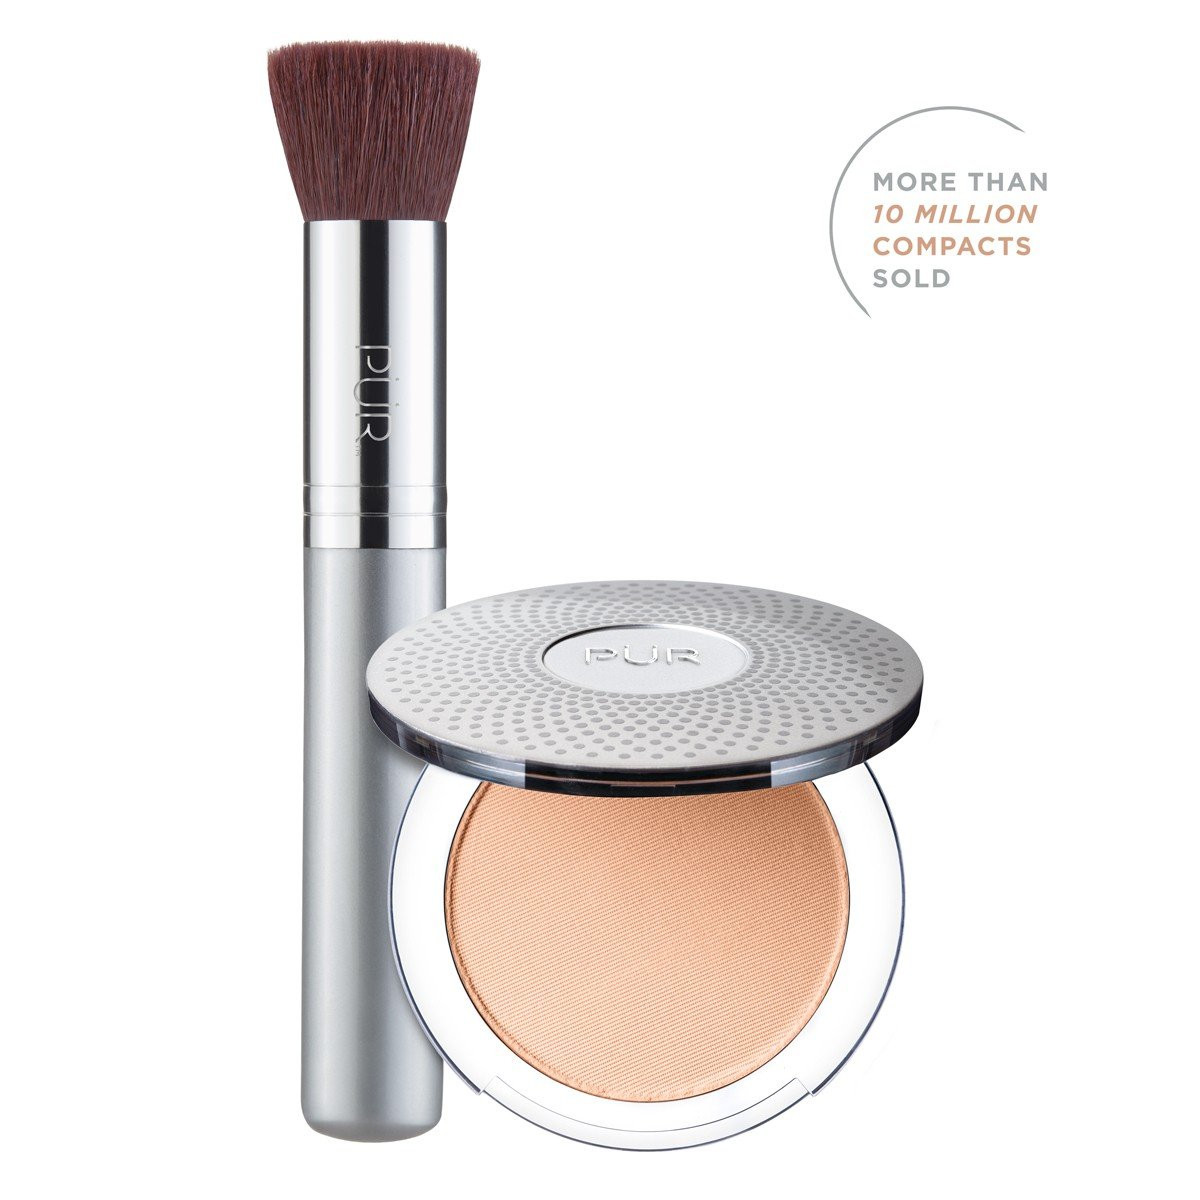 TRY PÜR! 4-in-1 Pressed Mineral Makeup and Brush Kit in Blush Medium